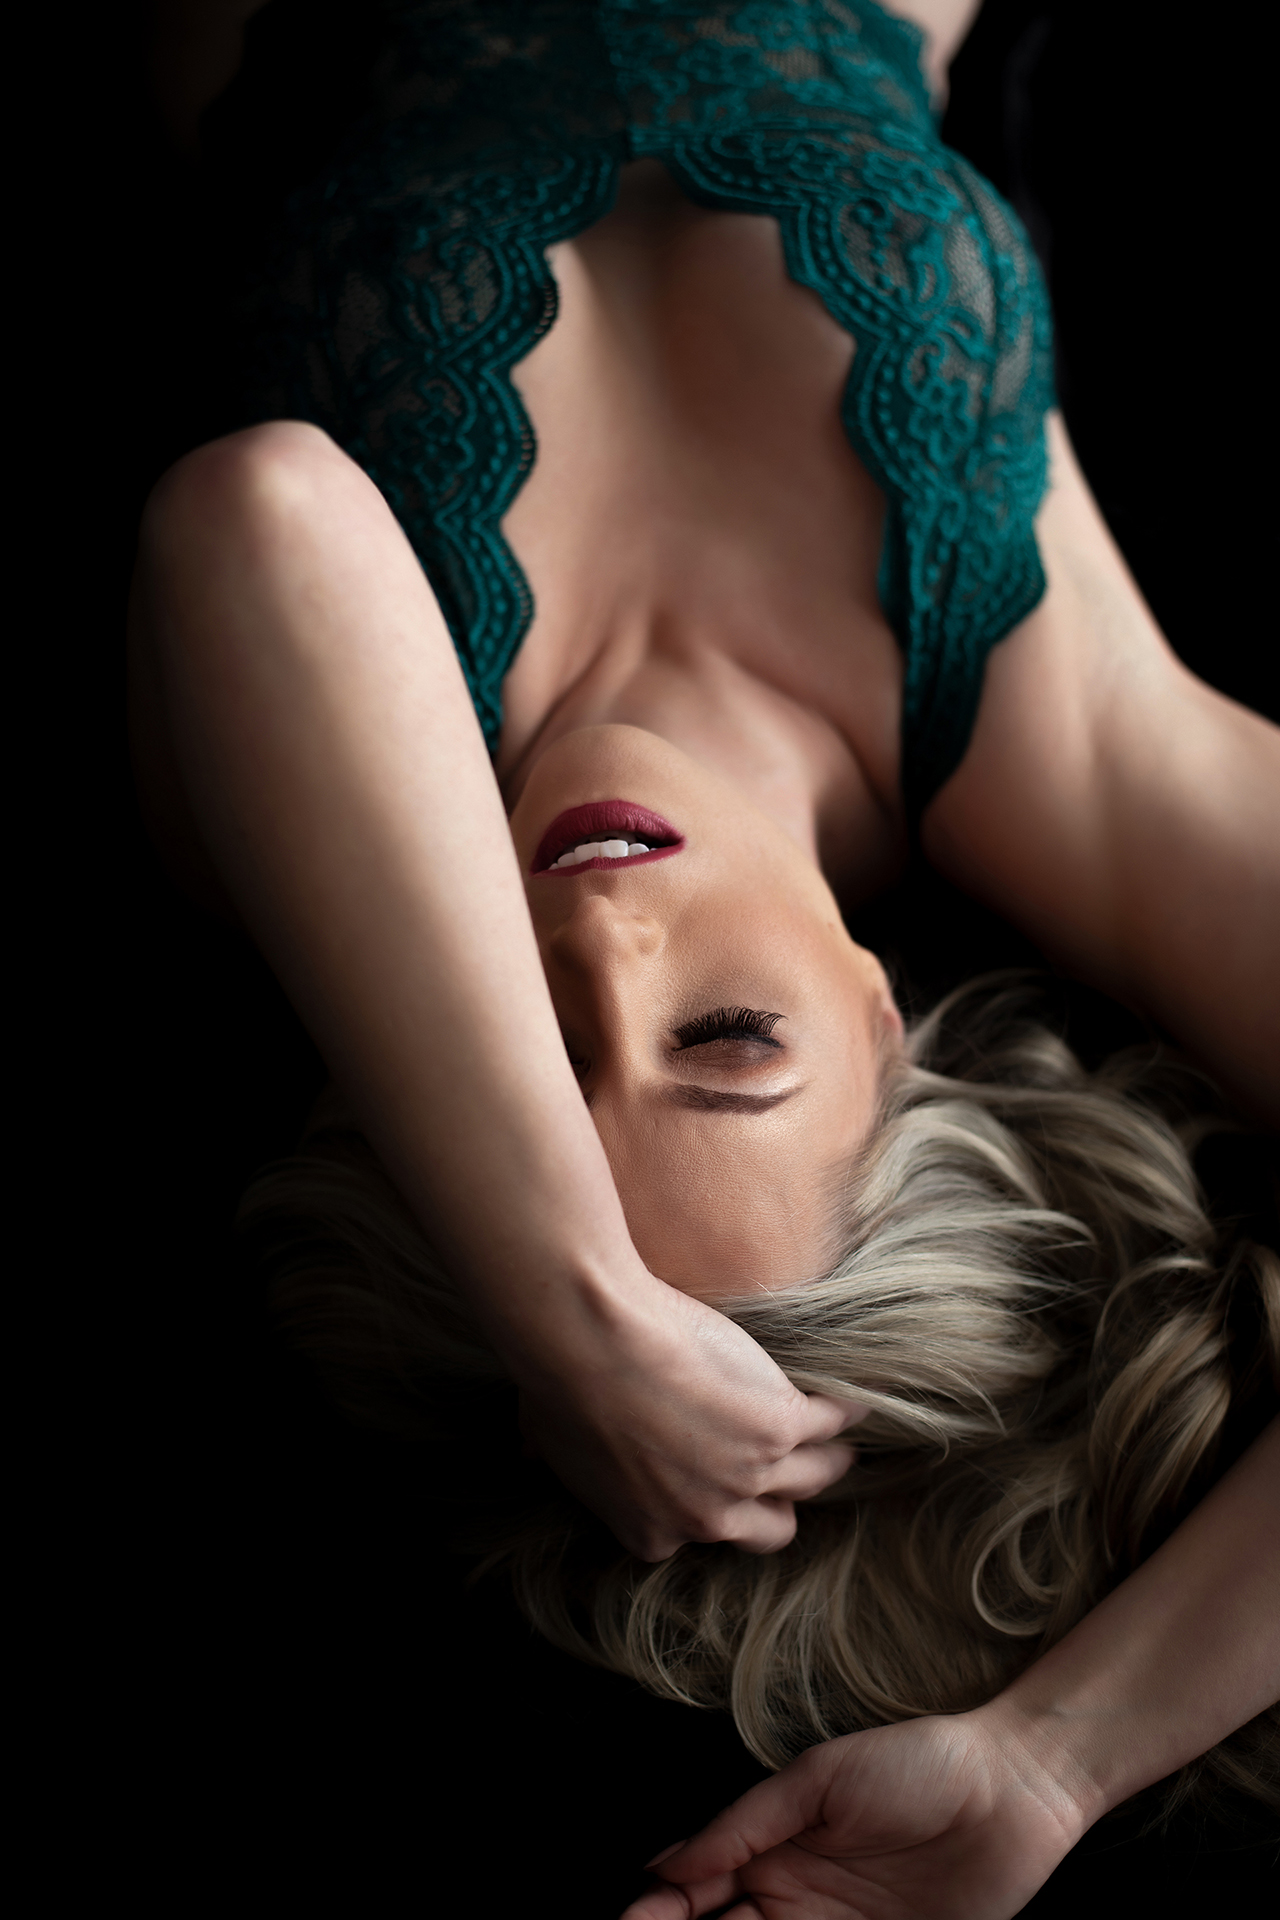 Boudoir Pose with forearm covering half of face, featuring blonde in emerald bodysuit.